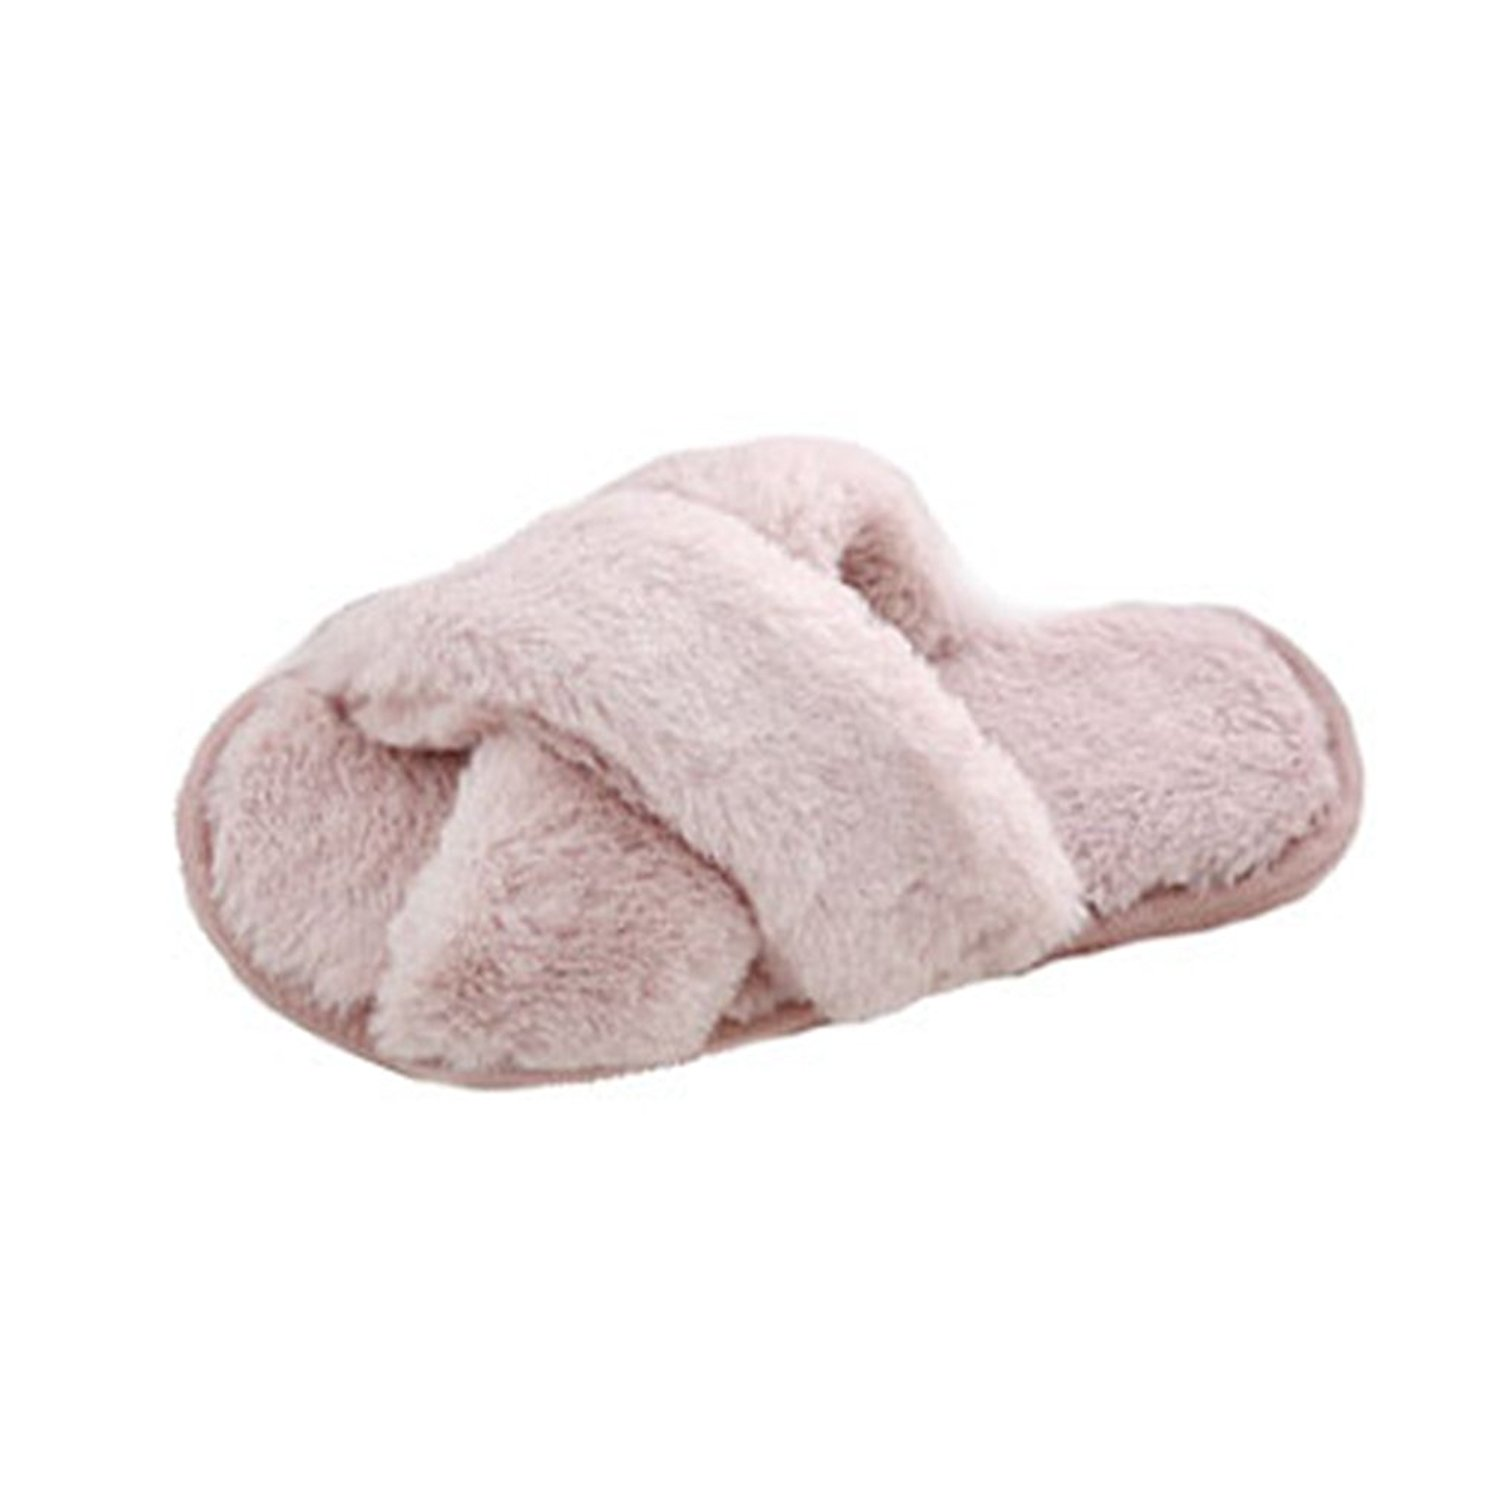 9125a79729b Get Quotations · GIY Women s Winter Warm Slippers Fur Indoor Slippers for Women  Fuzzy Cozy Plush Non-Slip